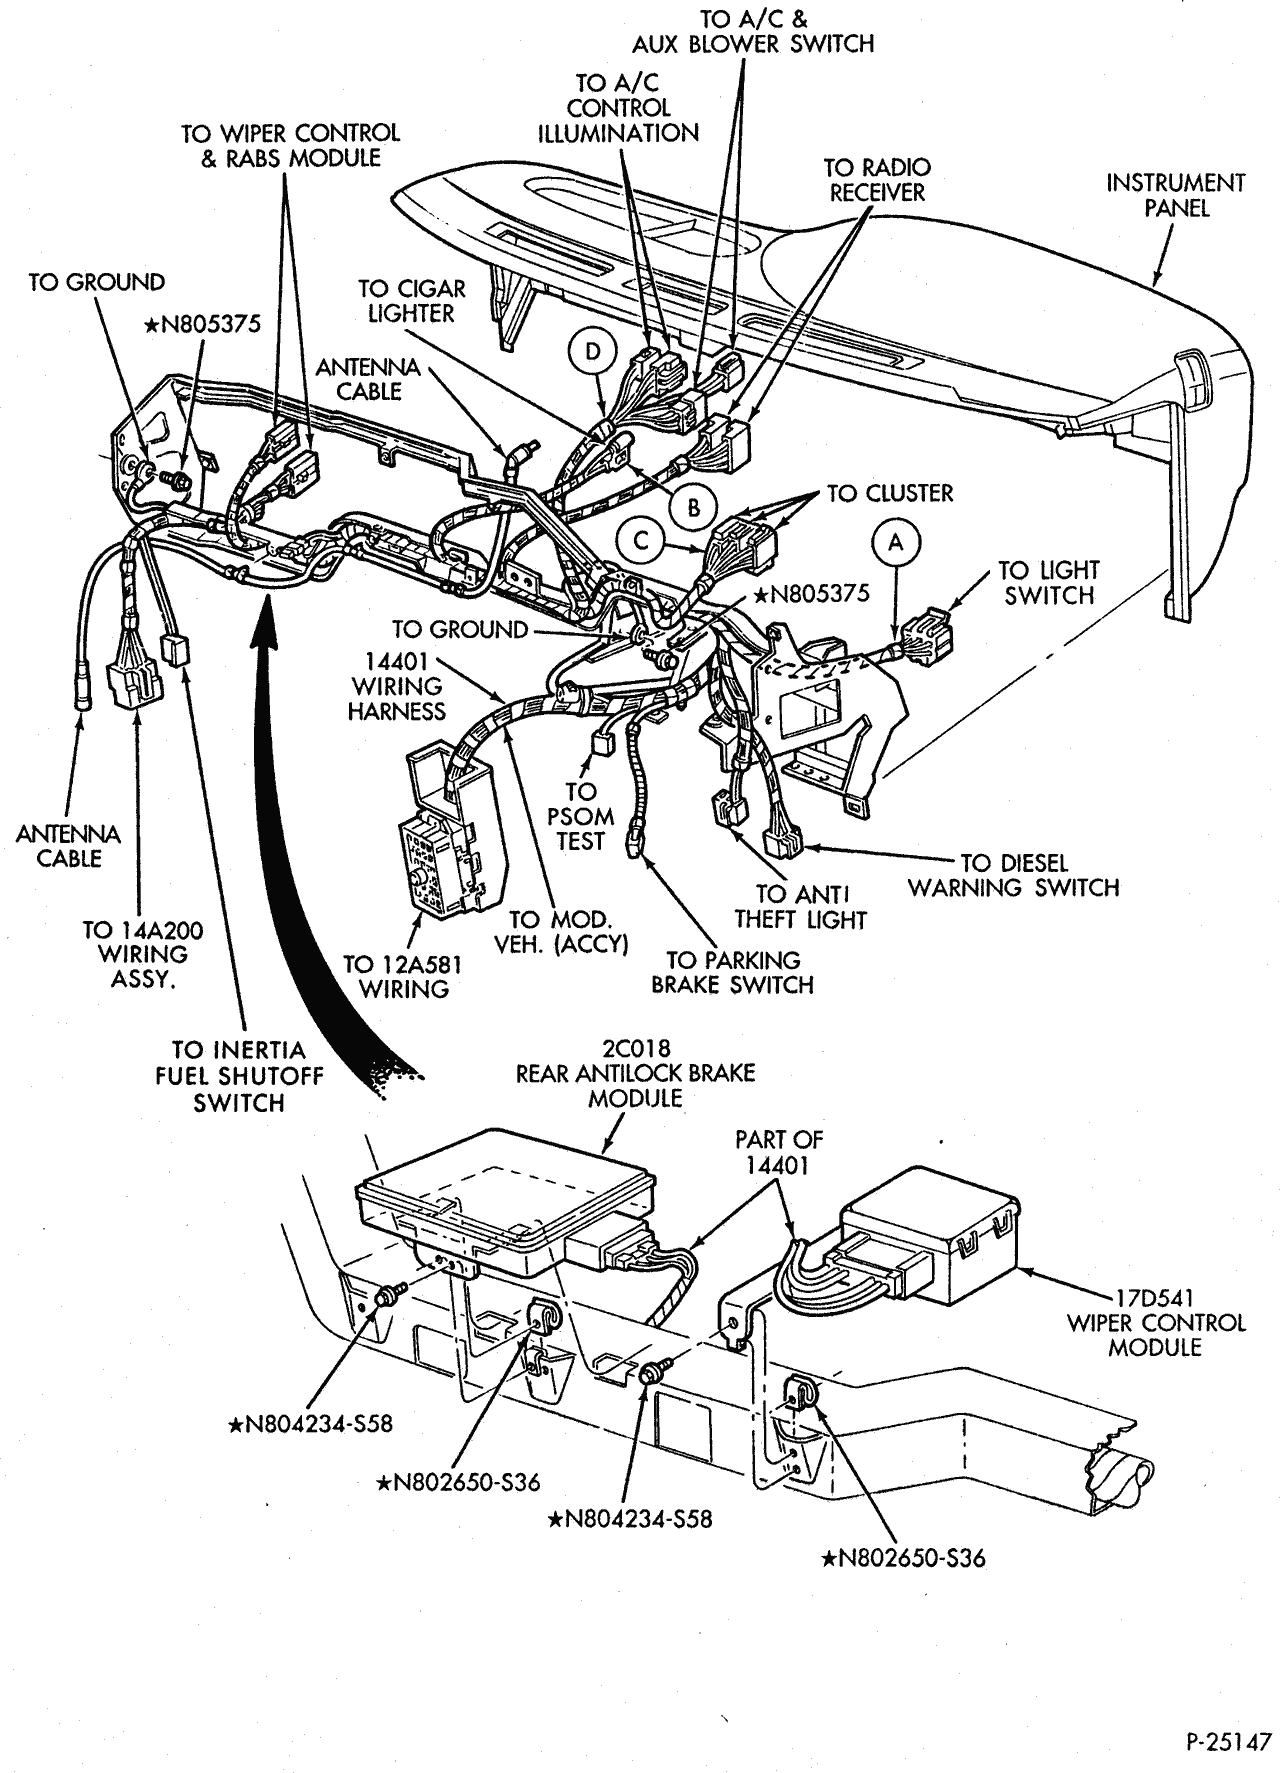 Ford E 150 Fuse Diagram For 96 - Wiring Diagram